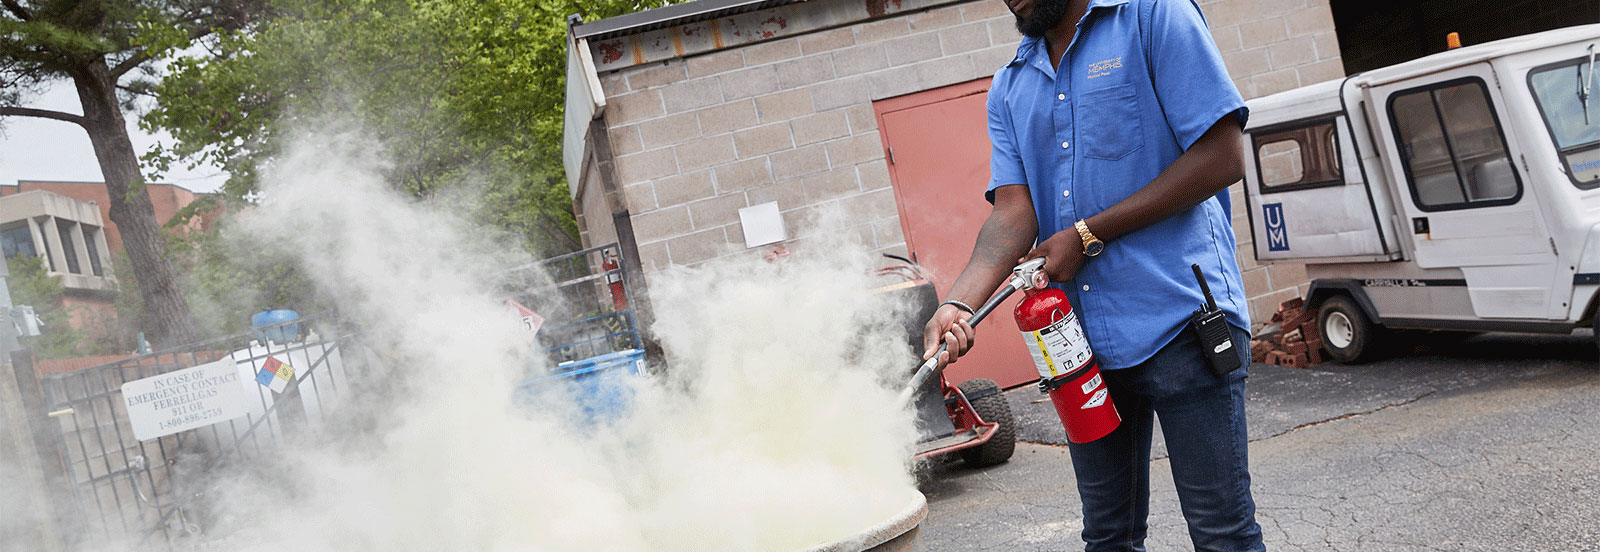 man demonstrating proper fire extinguisher use